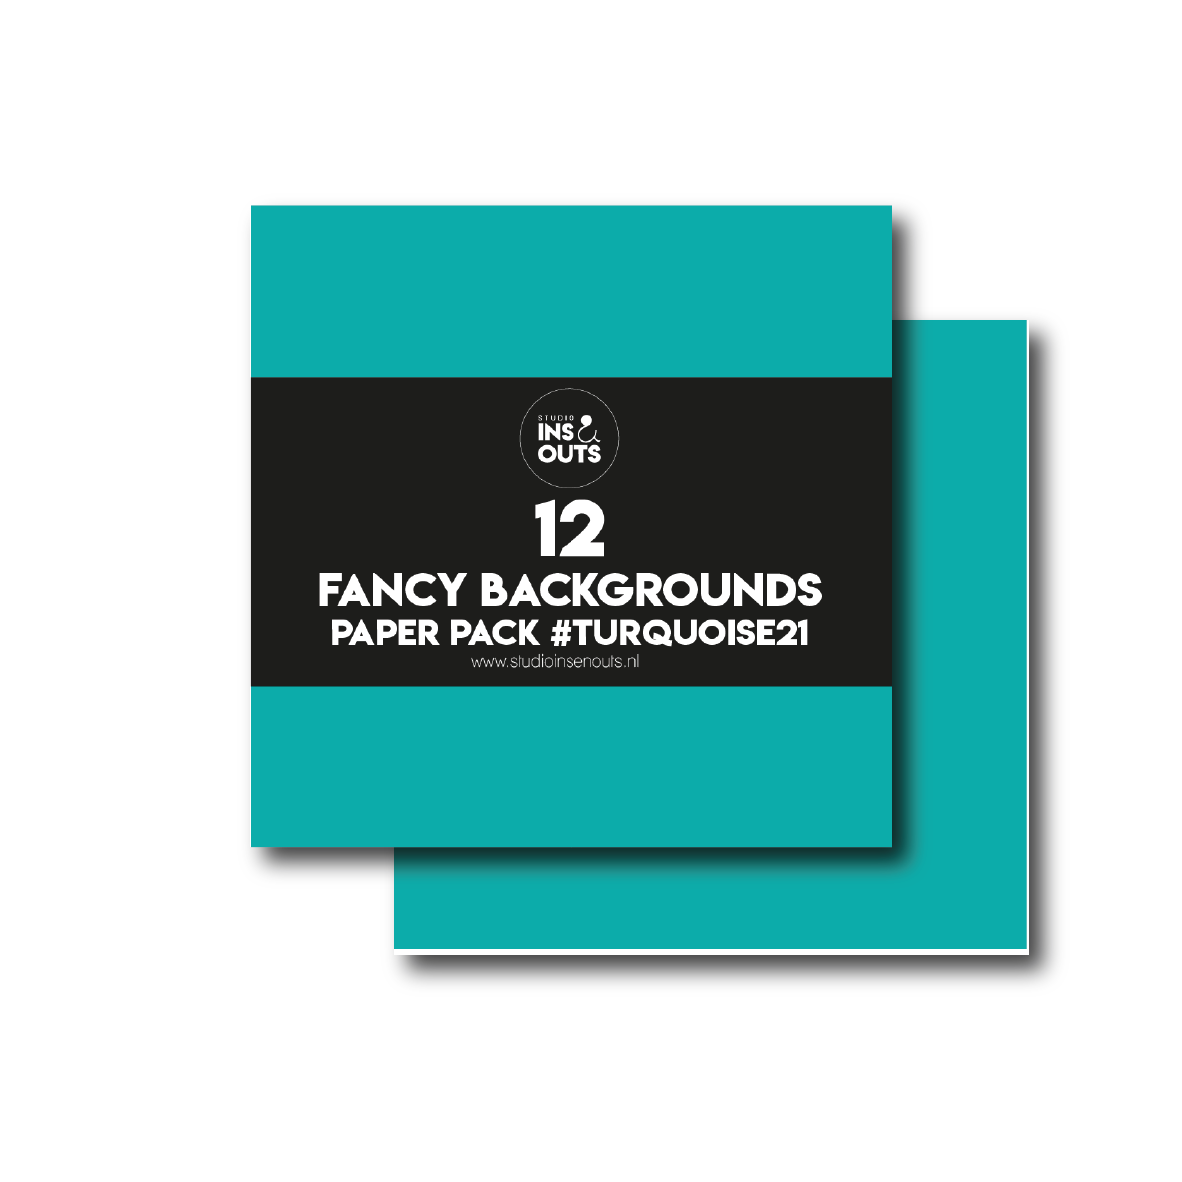 Paper pack turquoise'21